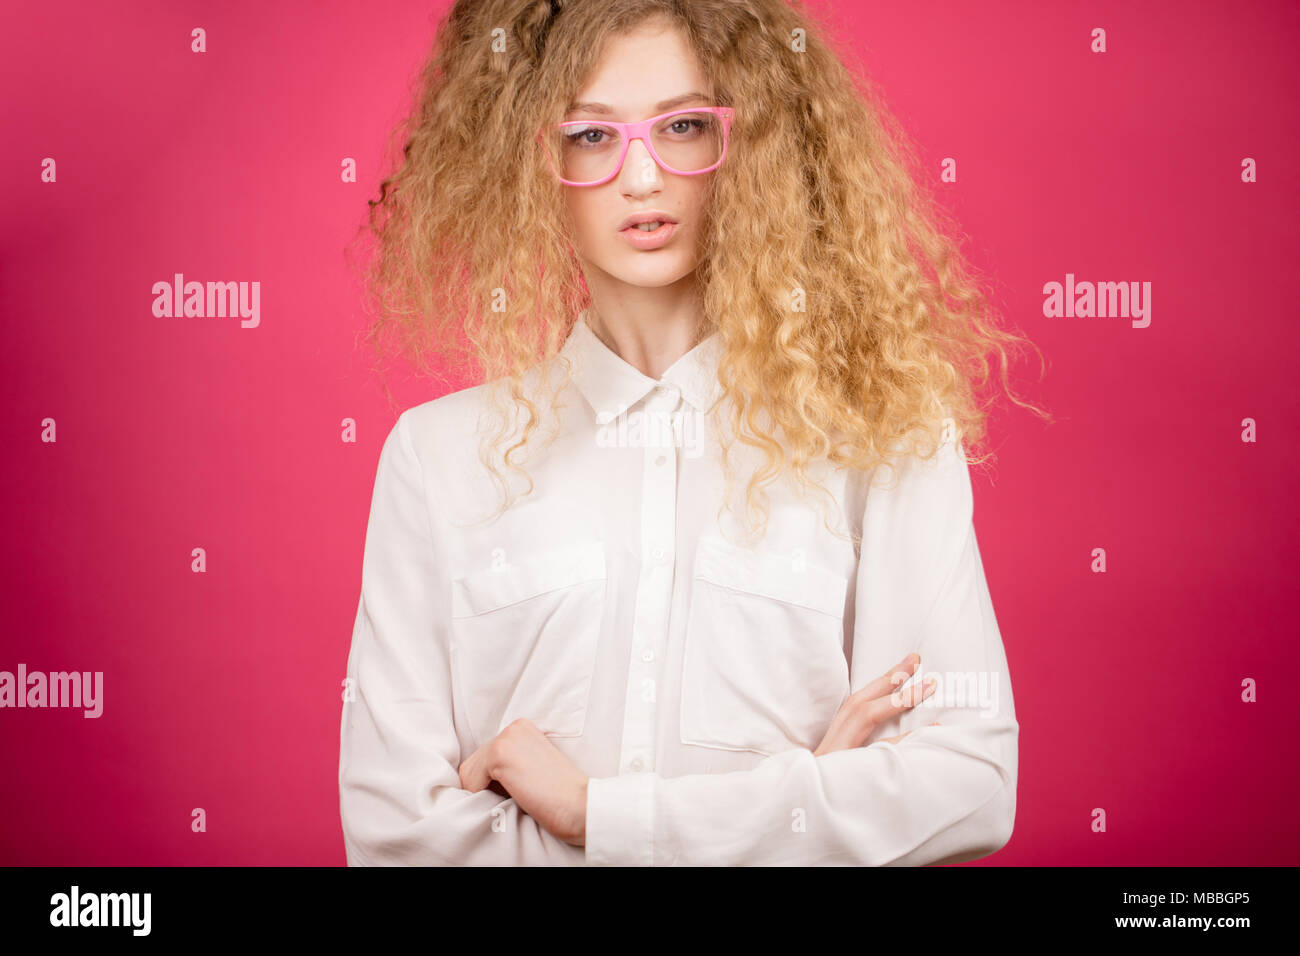 Frizzy Hair Woman Funny High Resolution Stock Photography And Images Alamy